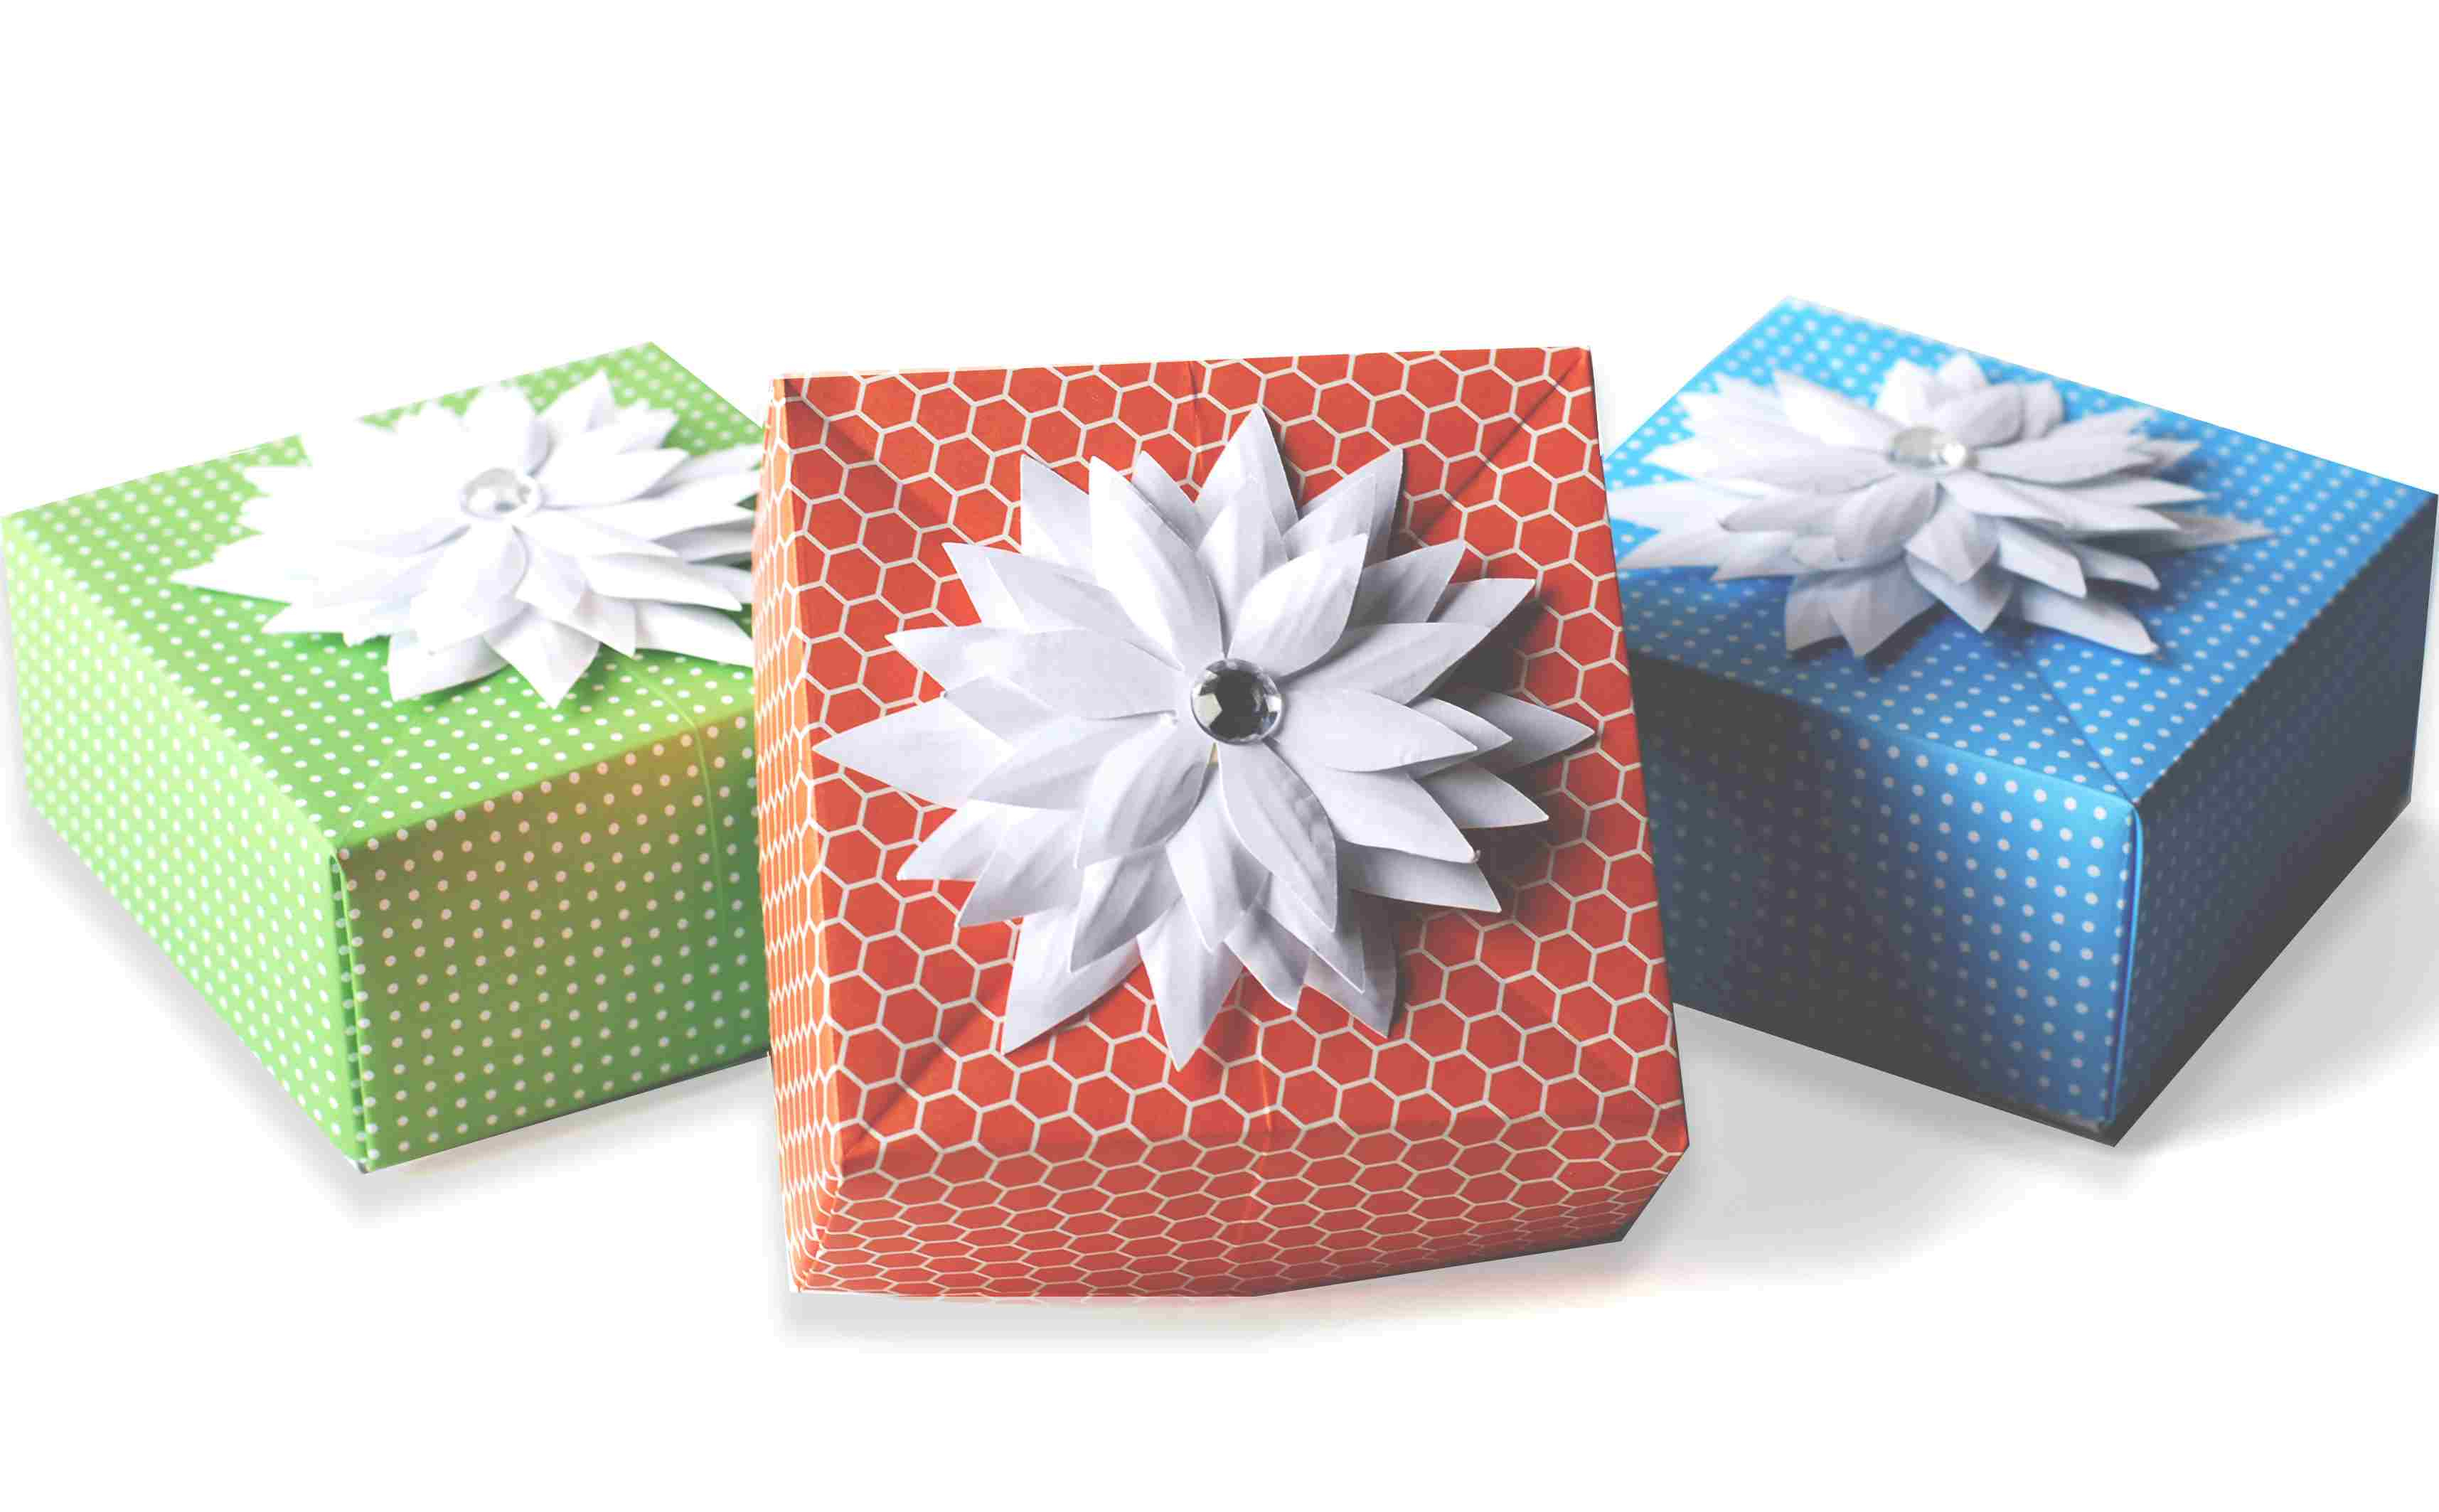 Handmade Paper Craft Gifts You can Make Right Now Diy Origami Gift Box Paper Craft